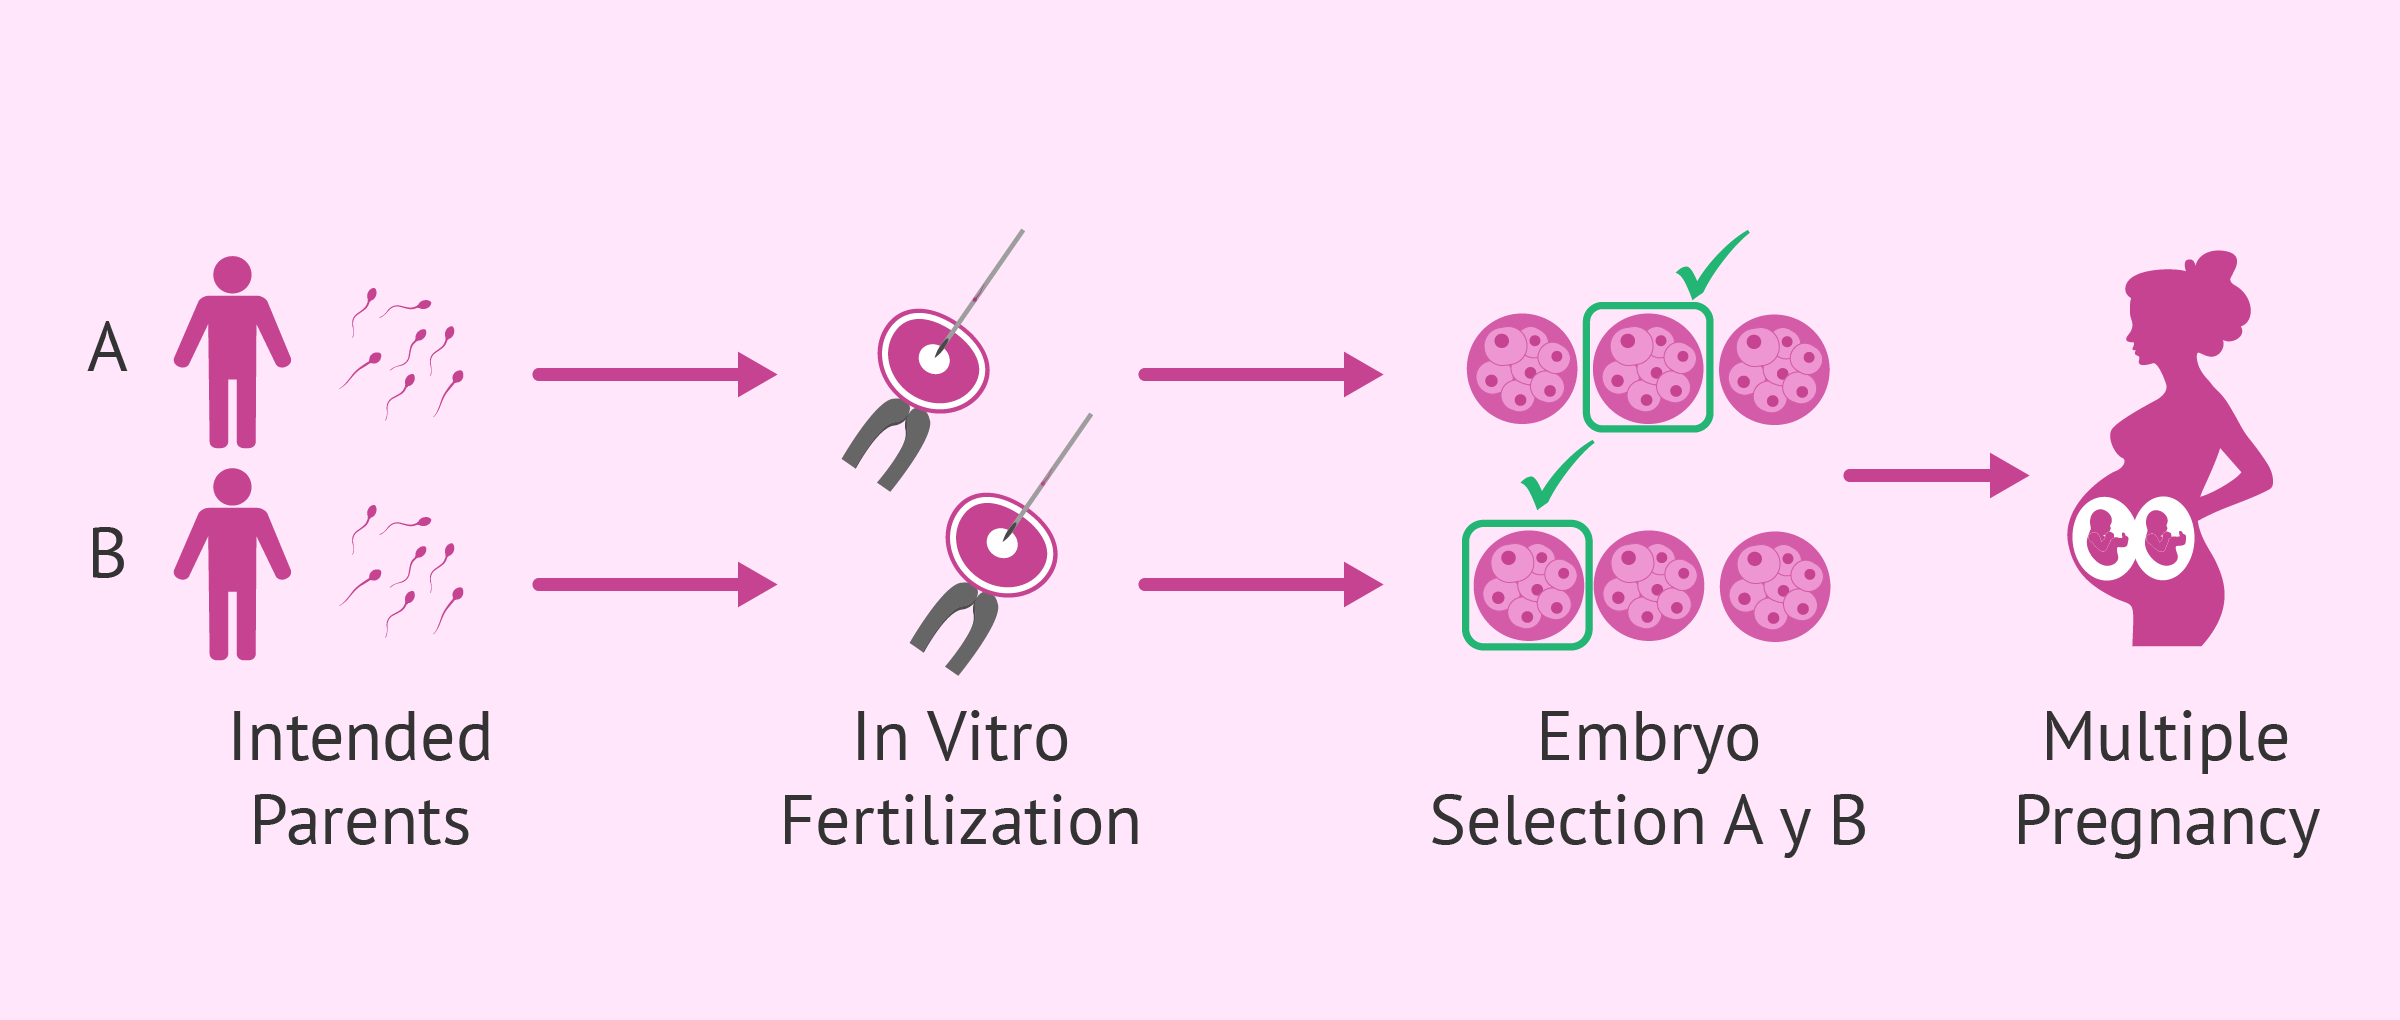 Transfer of one embryo from each father